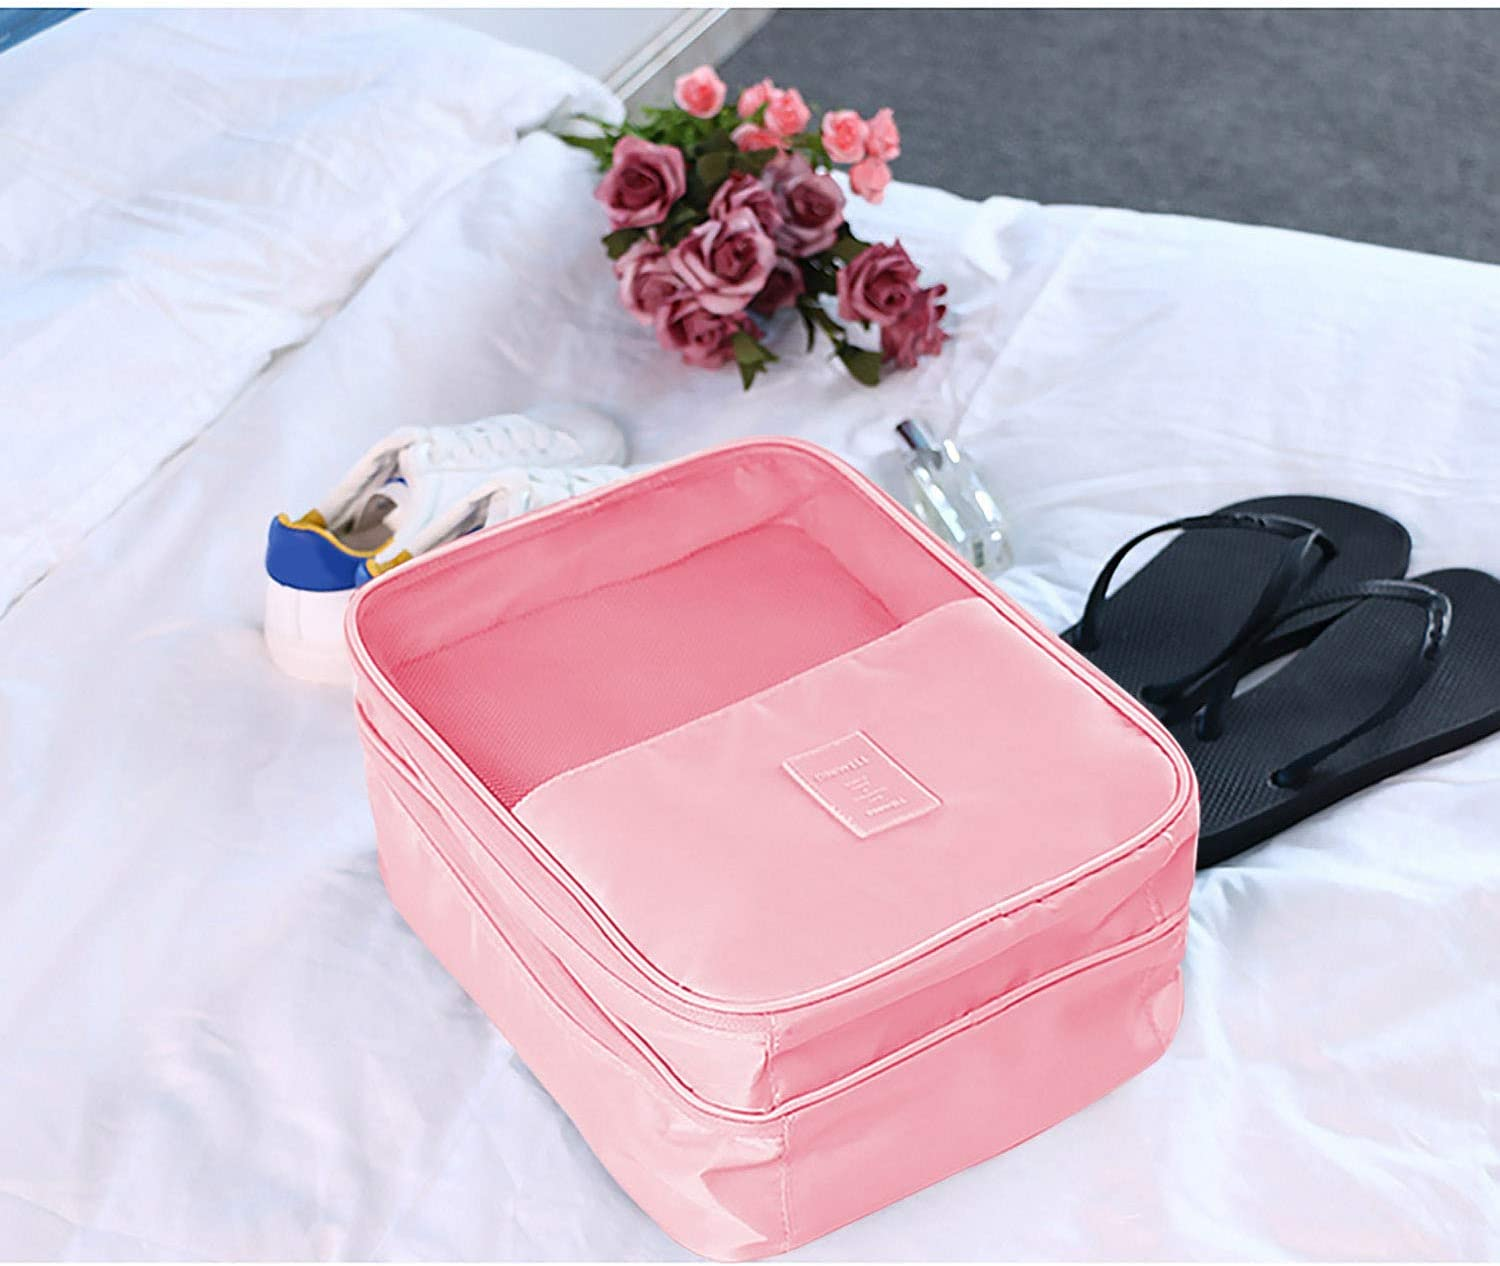 Shoes Bag for Travel Waterproof Dustproof Double-Layer Luggage Shoes Storage Bag Organizer for Men Women Traveling Vacation Trip Camping Pink Gosear Shoes Bag for Luggage